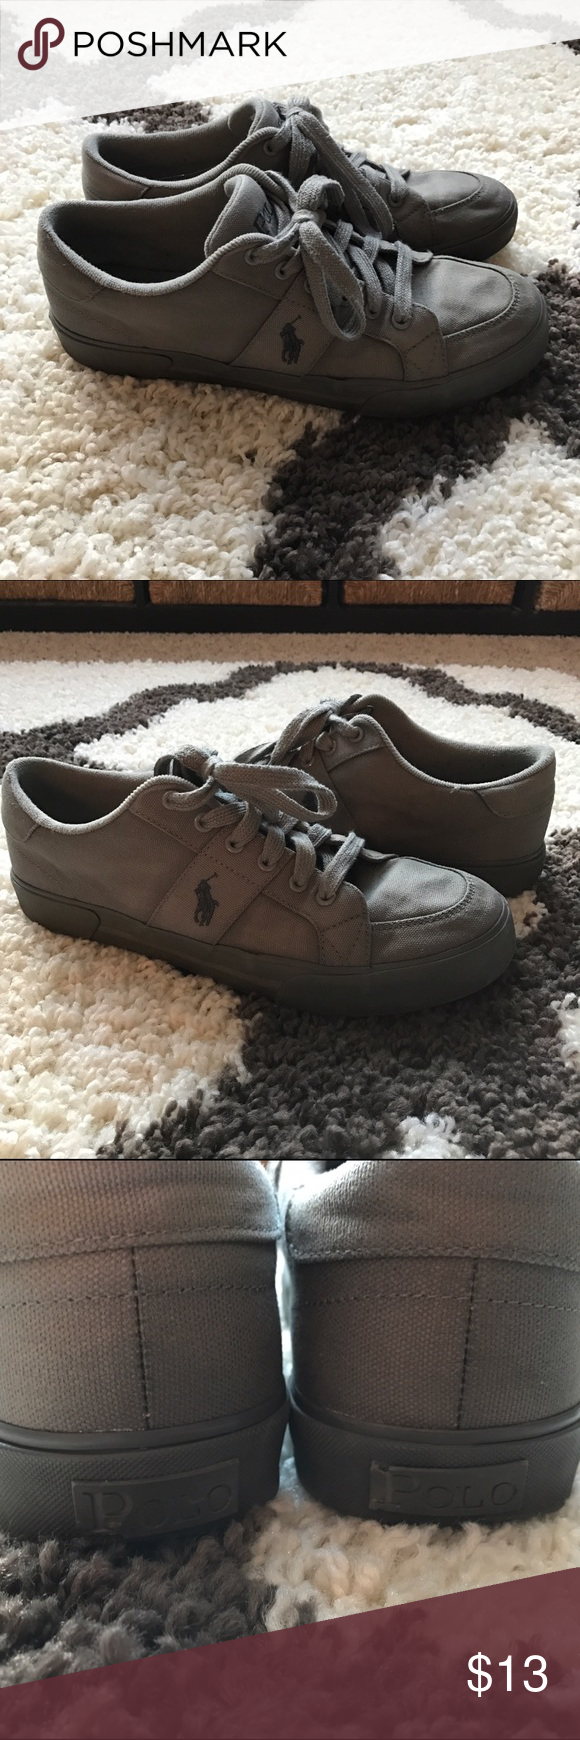 """Polo Ralph Lauren Sneakers All gray sneakers by Polo Ralph Lauren! Normal wear from gentle use, still in good shape! Some chipping on the """"POLO"""" word logo on the heel (as shown in the third picture). Polo by Ralph Lauren Shoes Sneakers"""